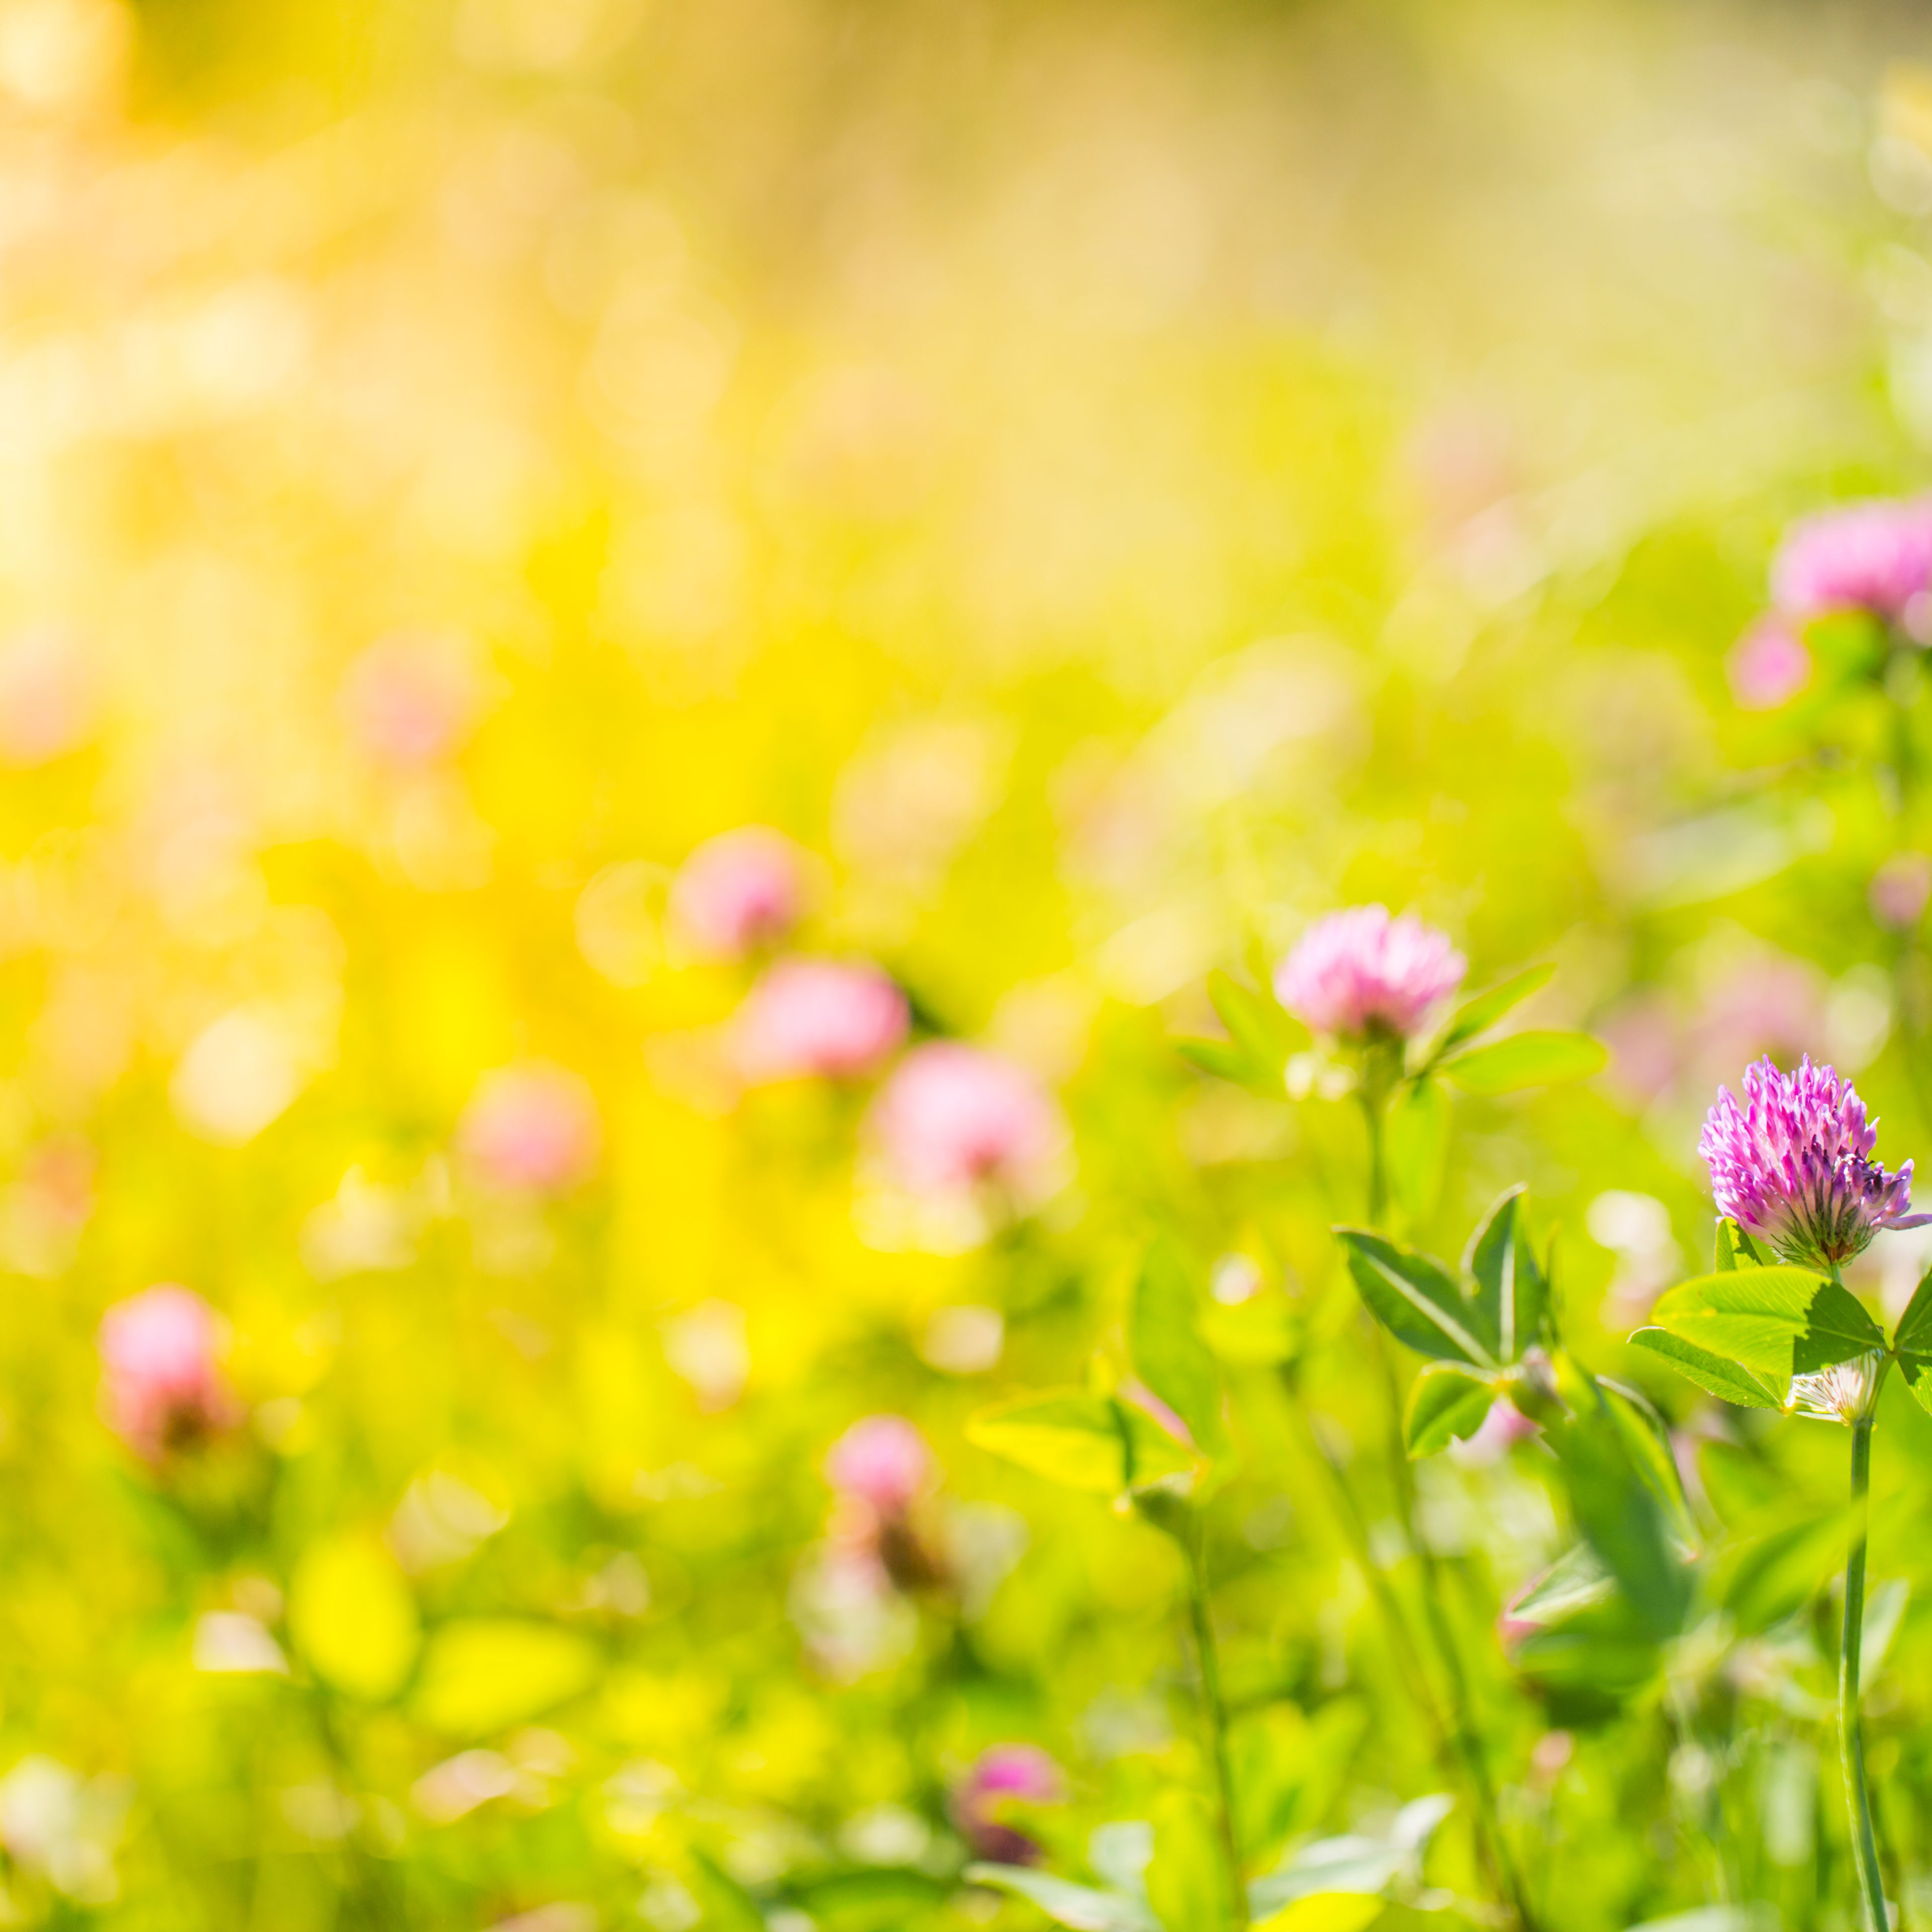 amazing summer nature meadow flowers sunlight day landscape inspirational nature background 5a563c37eb4d b3